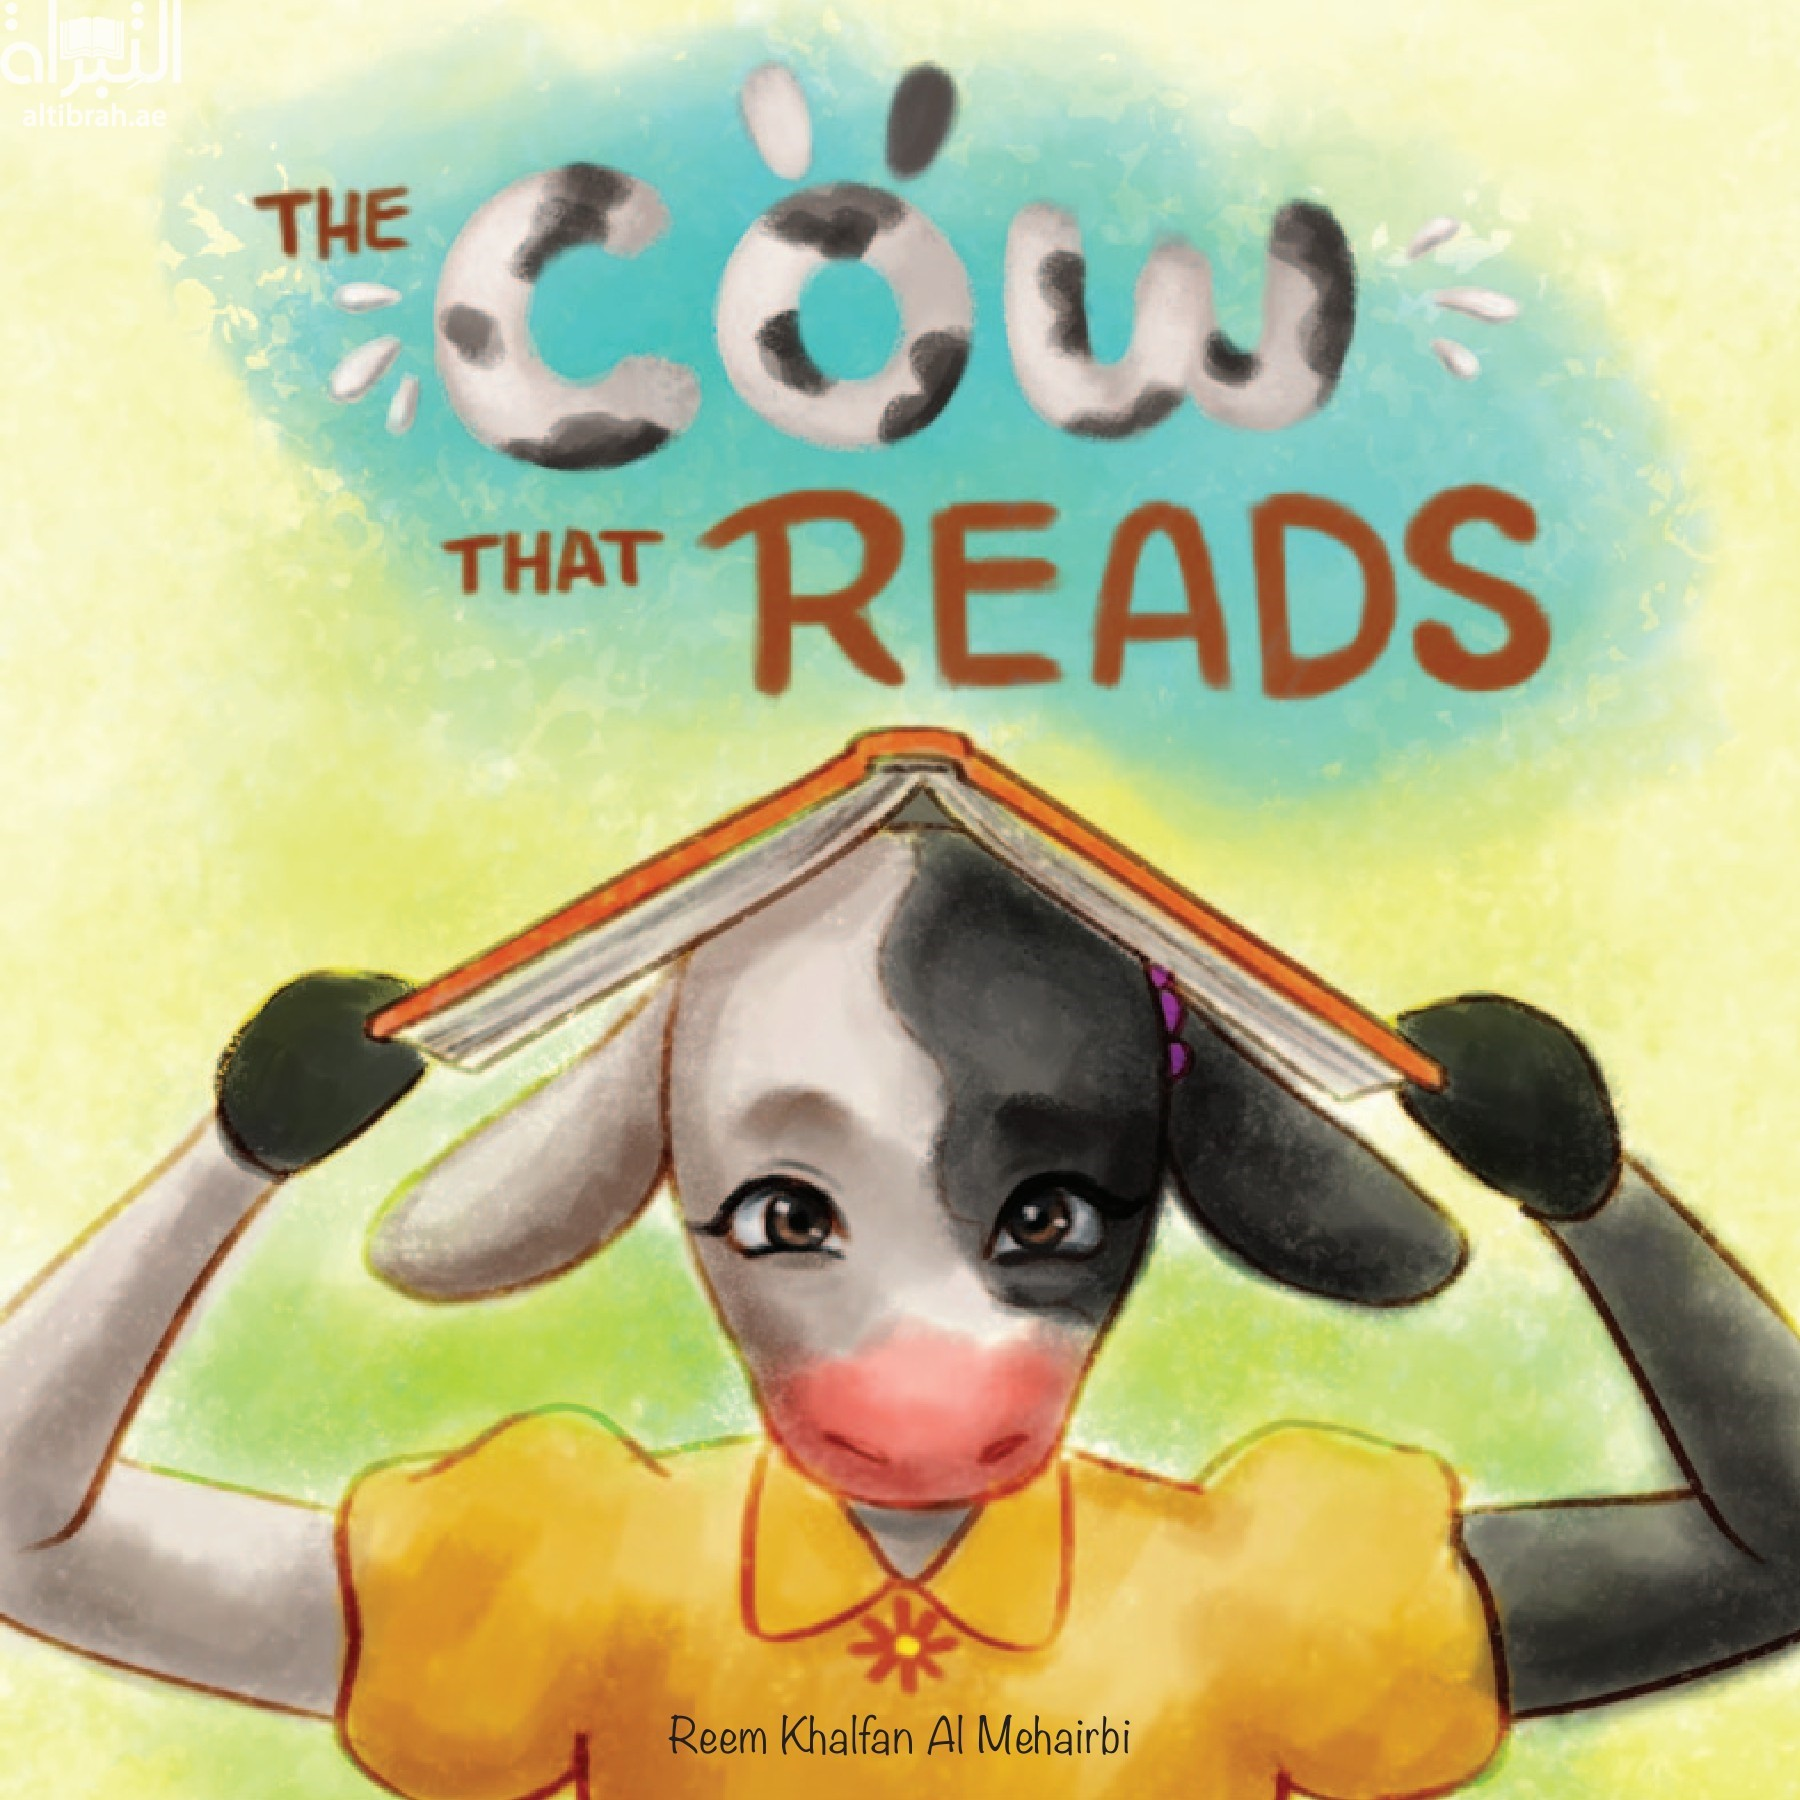 غلاف كتاب The Cow that reads